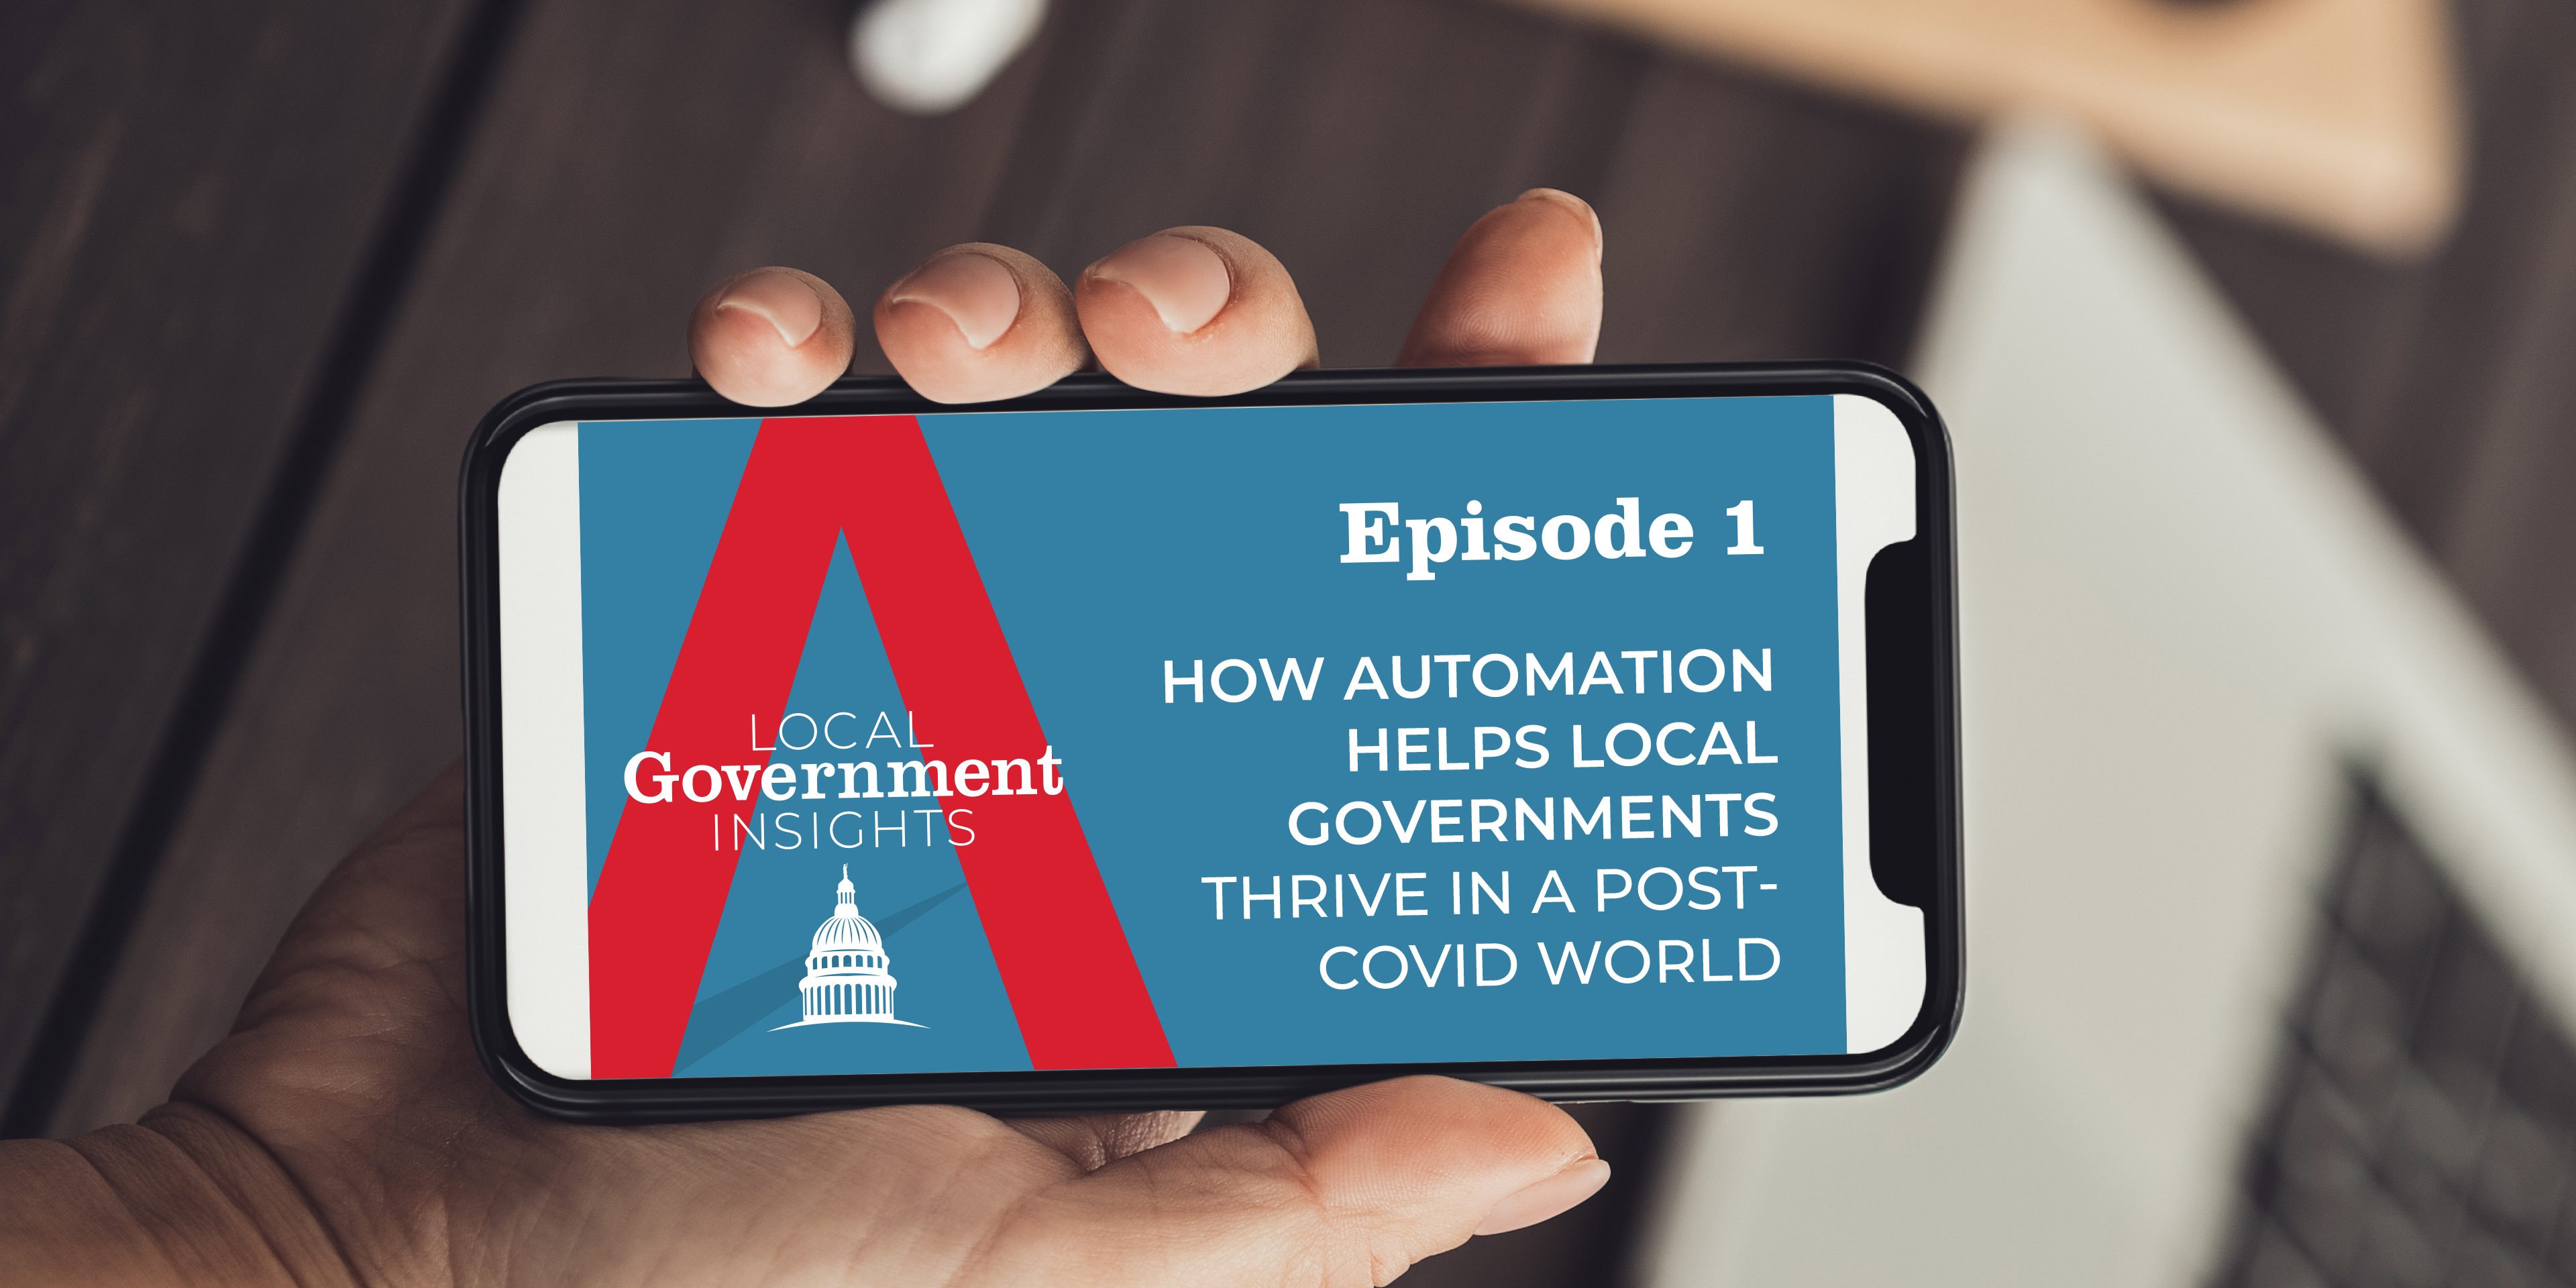 How Automation Helps Local Governments Thrive in a Post-Covid World